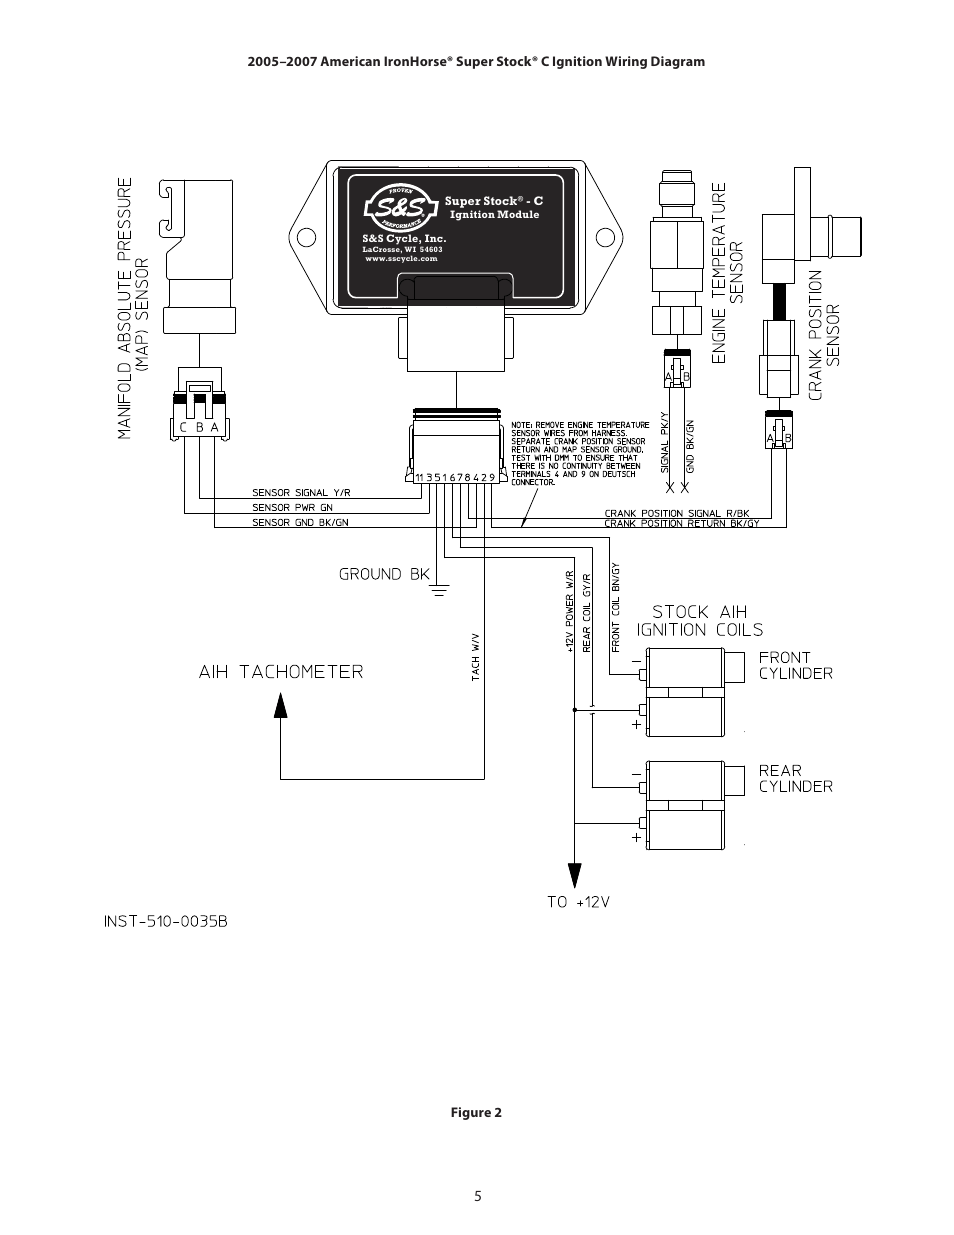 ss cycle super stock c ignition in carbureted 20042007 american ironhorse motorcycles page5?resize\\\\\\\\\\\\\\\\\\\\\\\\\\\\\\\=665%2C861 motorcycle tach wiring diagram motorcycle voltage regulator motorcycle tachometer wiring diagram at bayanpartner.co